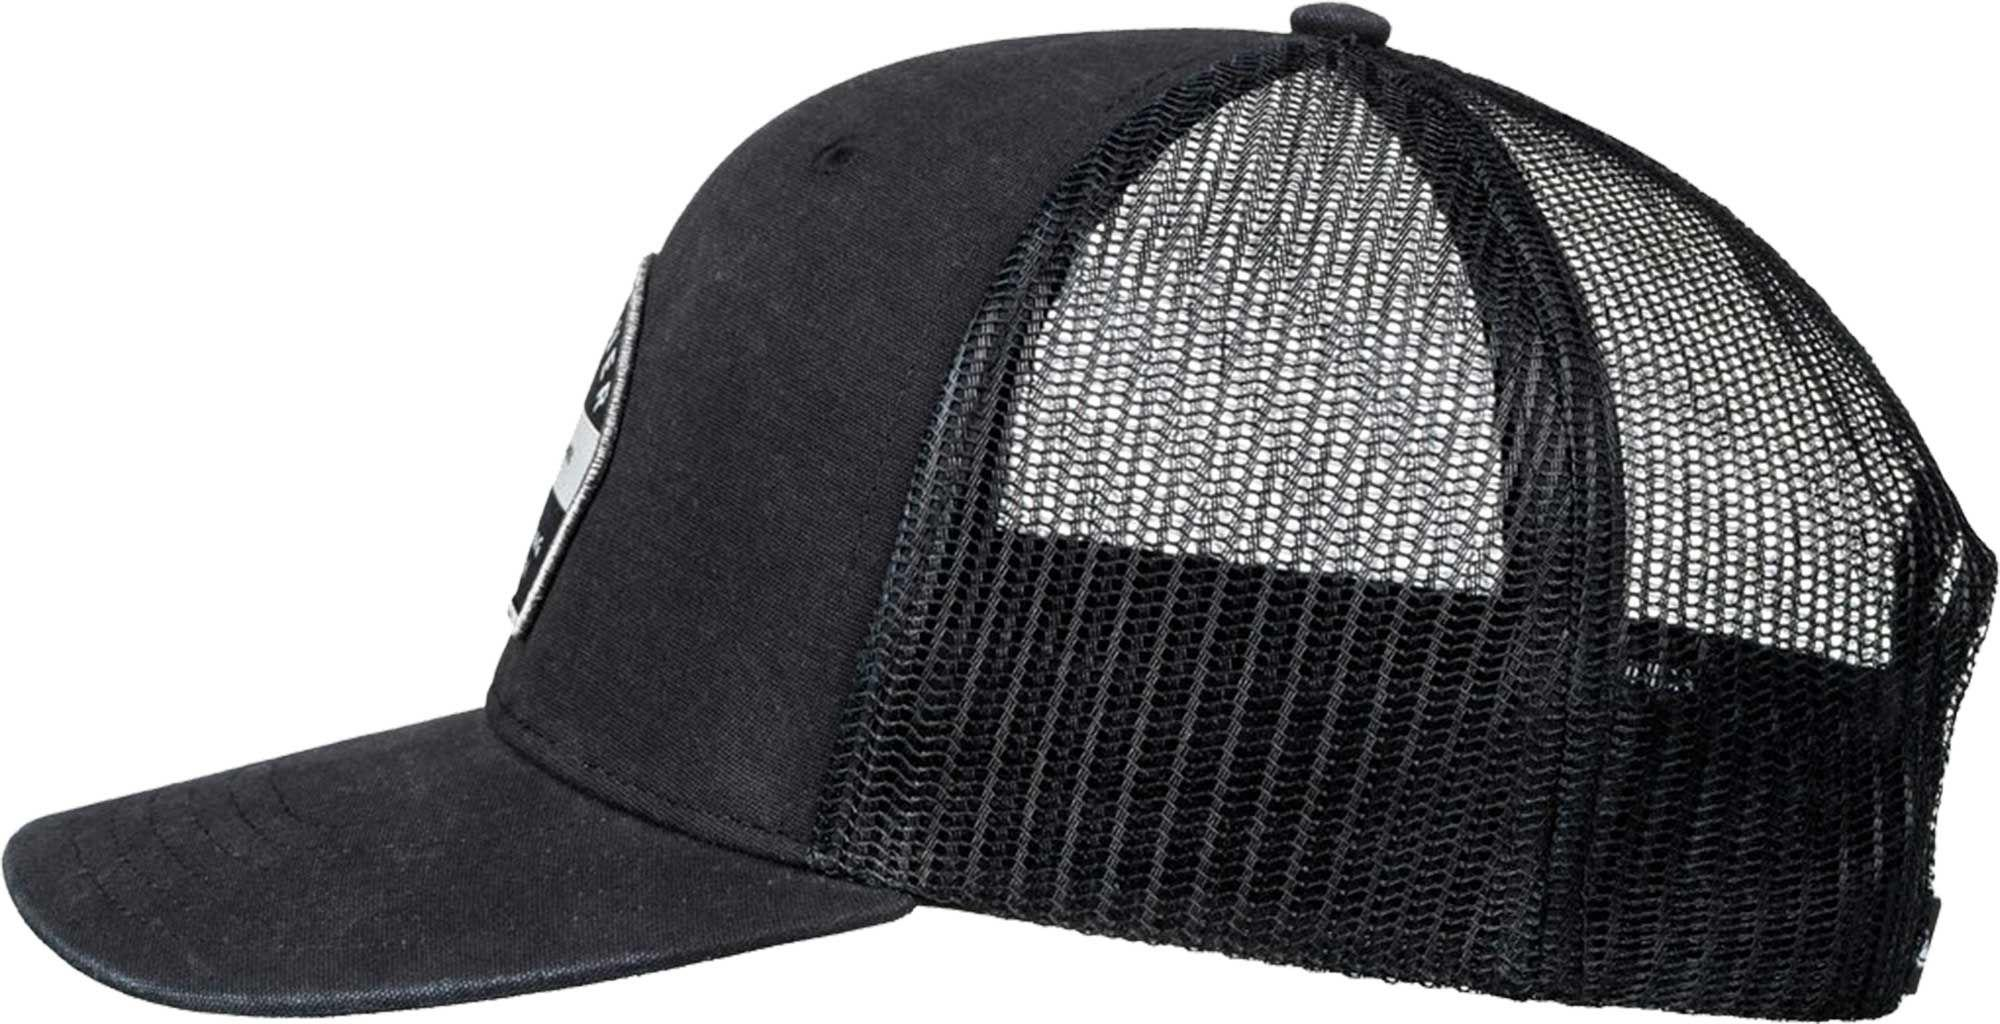 Lyst - Quiksilver Quicksilver Silver Lining Trucker Hat in Black for Men 0d3ca75cf07